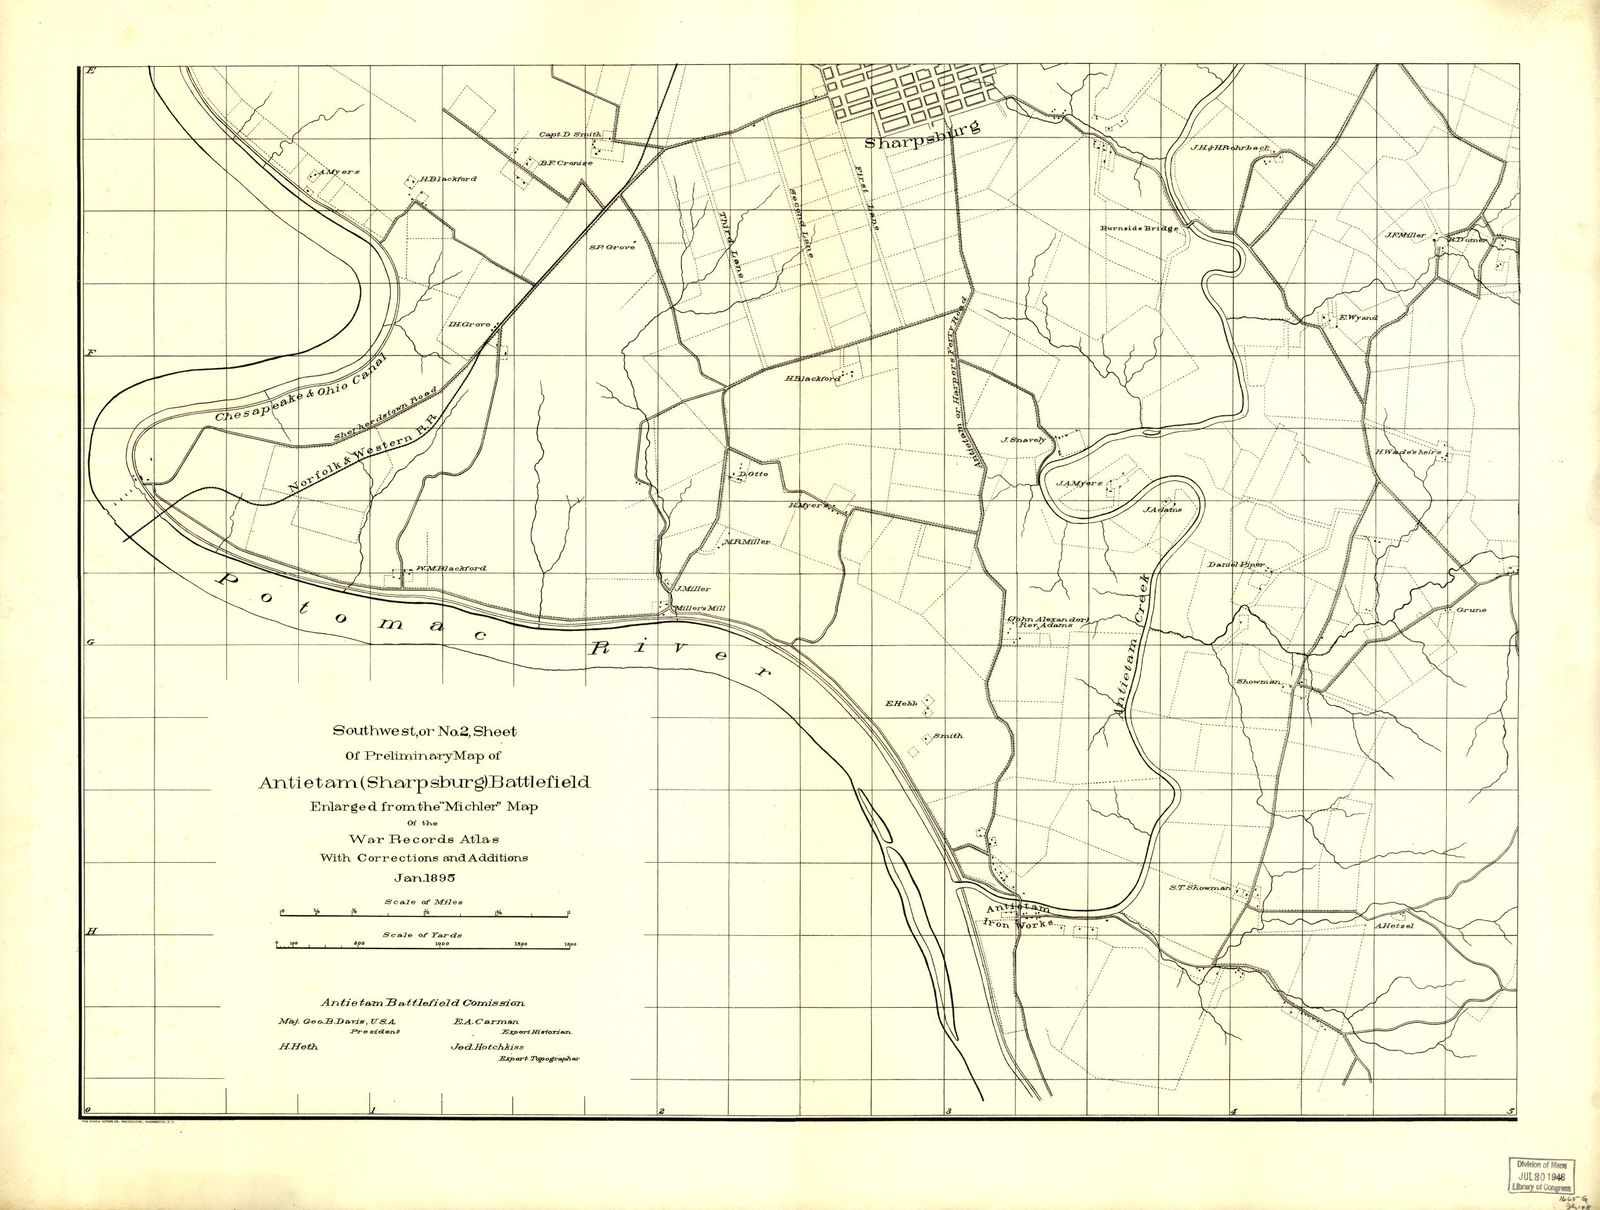 """Southwest, or no. 2, sheet of preliminary map of Antietam (Sharpsburg) battlefield. Enlarged from """"Michler"""" map of the war records atlas with corrections and additions"""